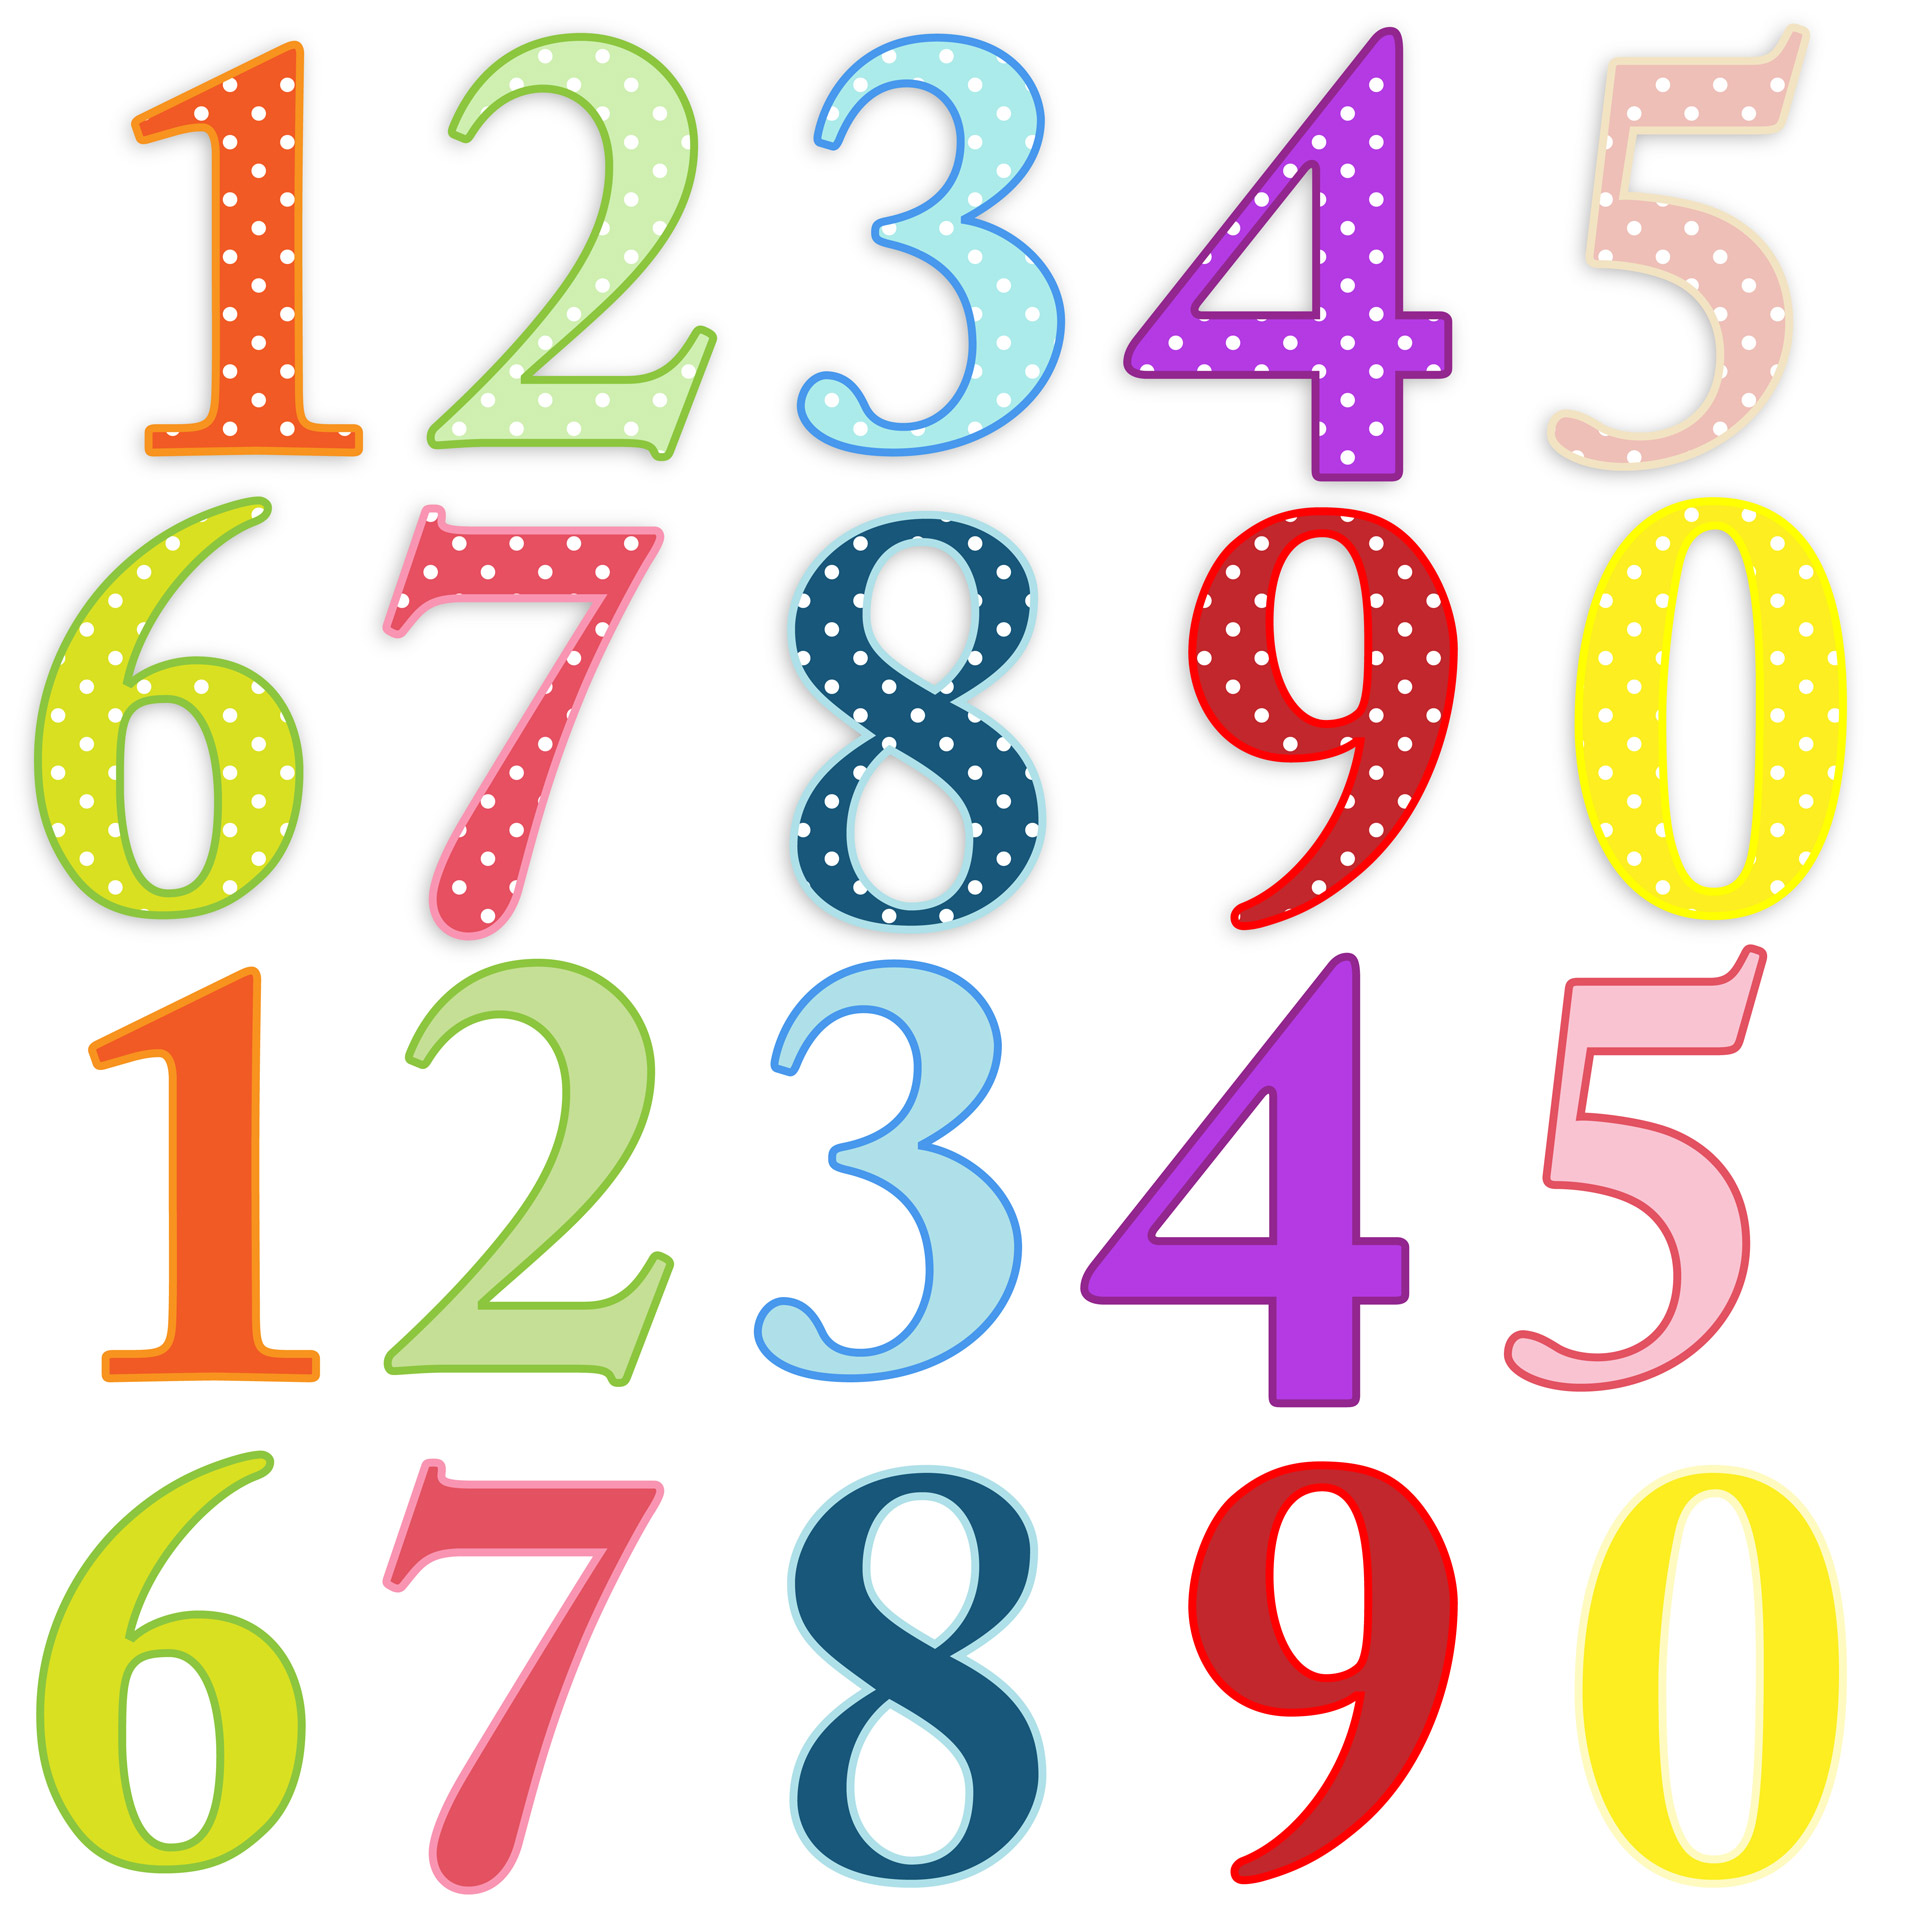 Number clipart. Numbers colorful clip art